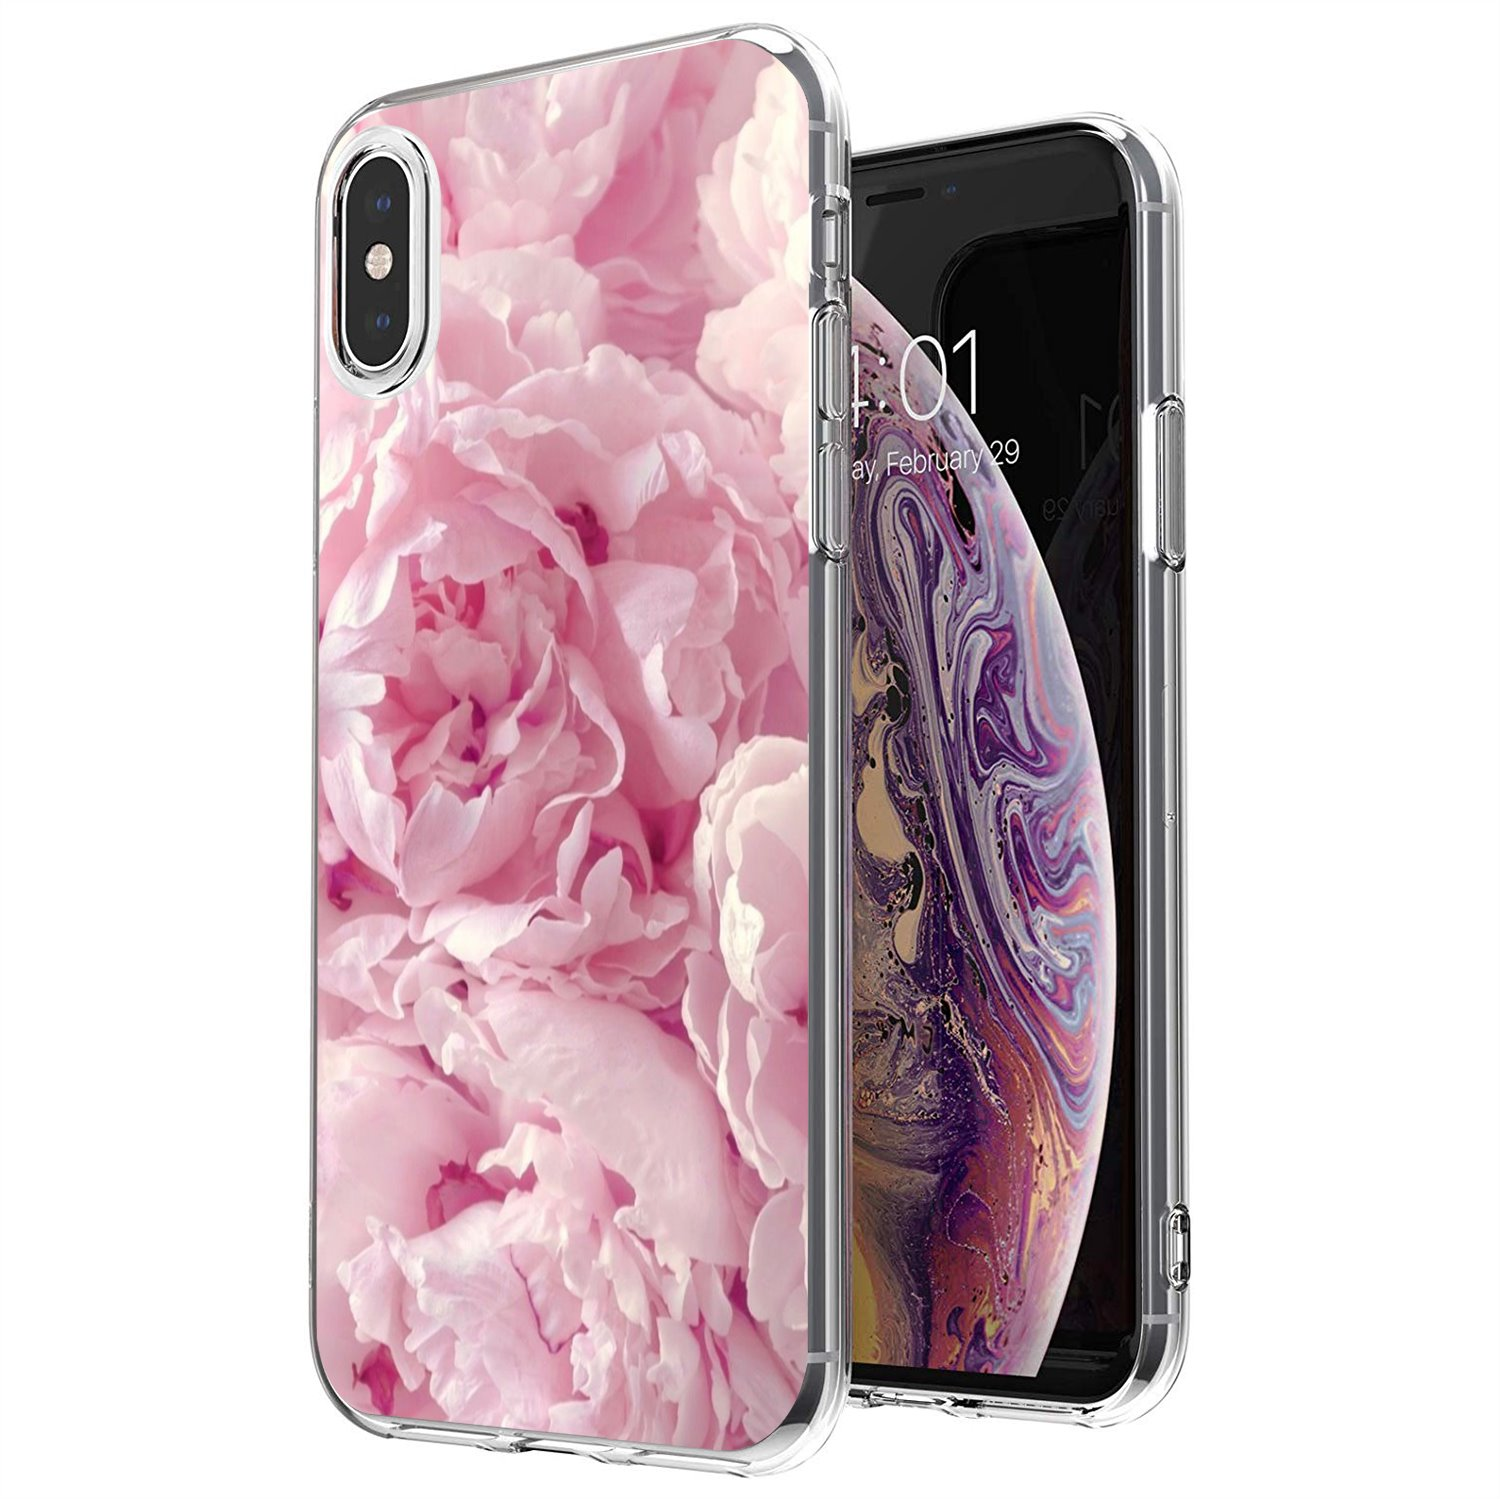 Pink Flower Peony Buy Silicone Phone Case For Xiaomi Redmi 4A 7A S2 Note 8 3 3S 4 4X 5 Plus 6 7 6A Pro Pocophone F1(China)